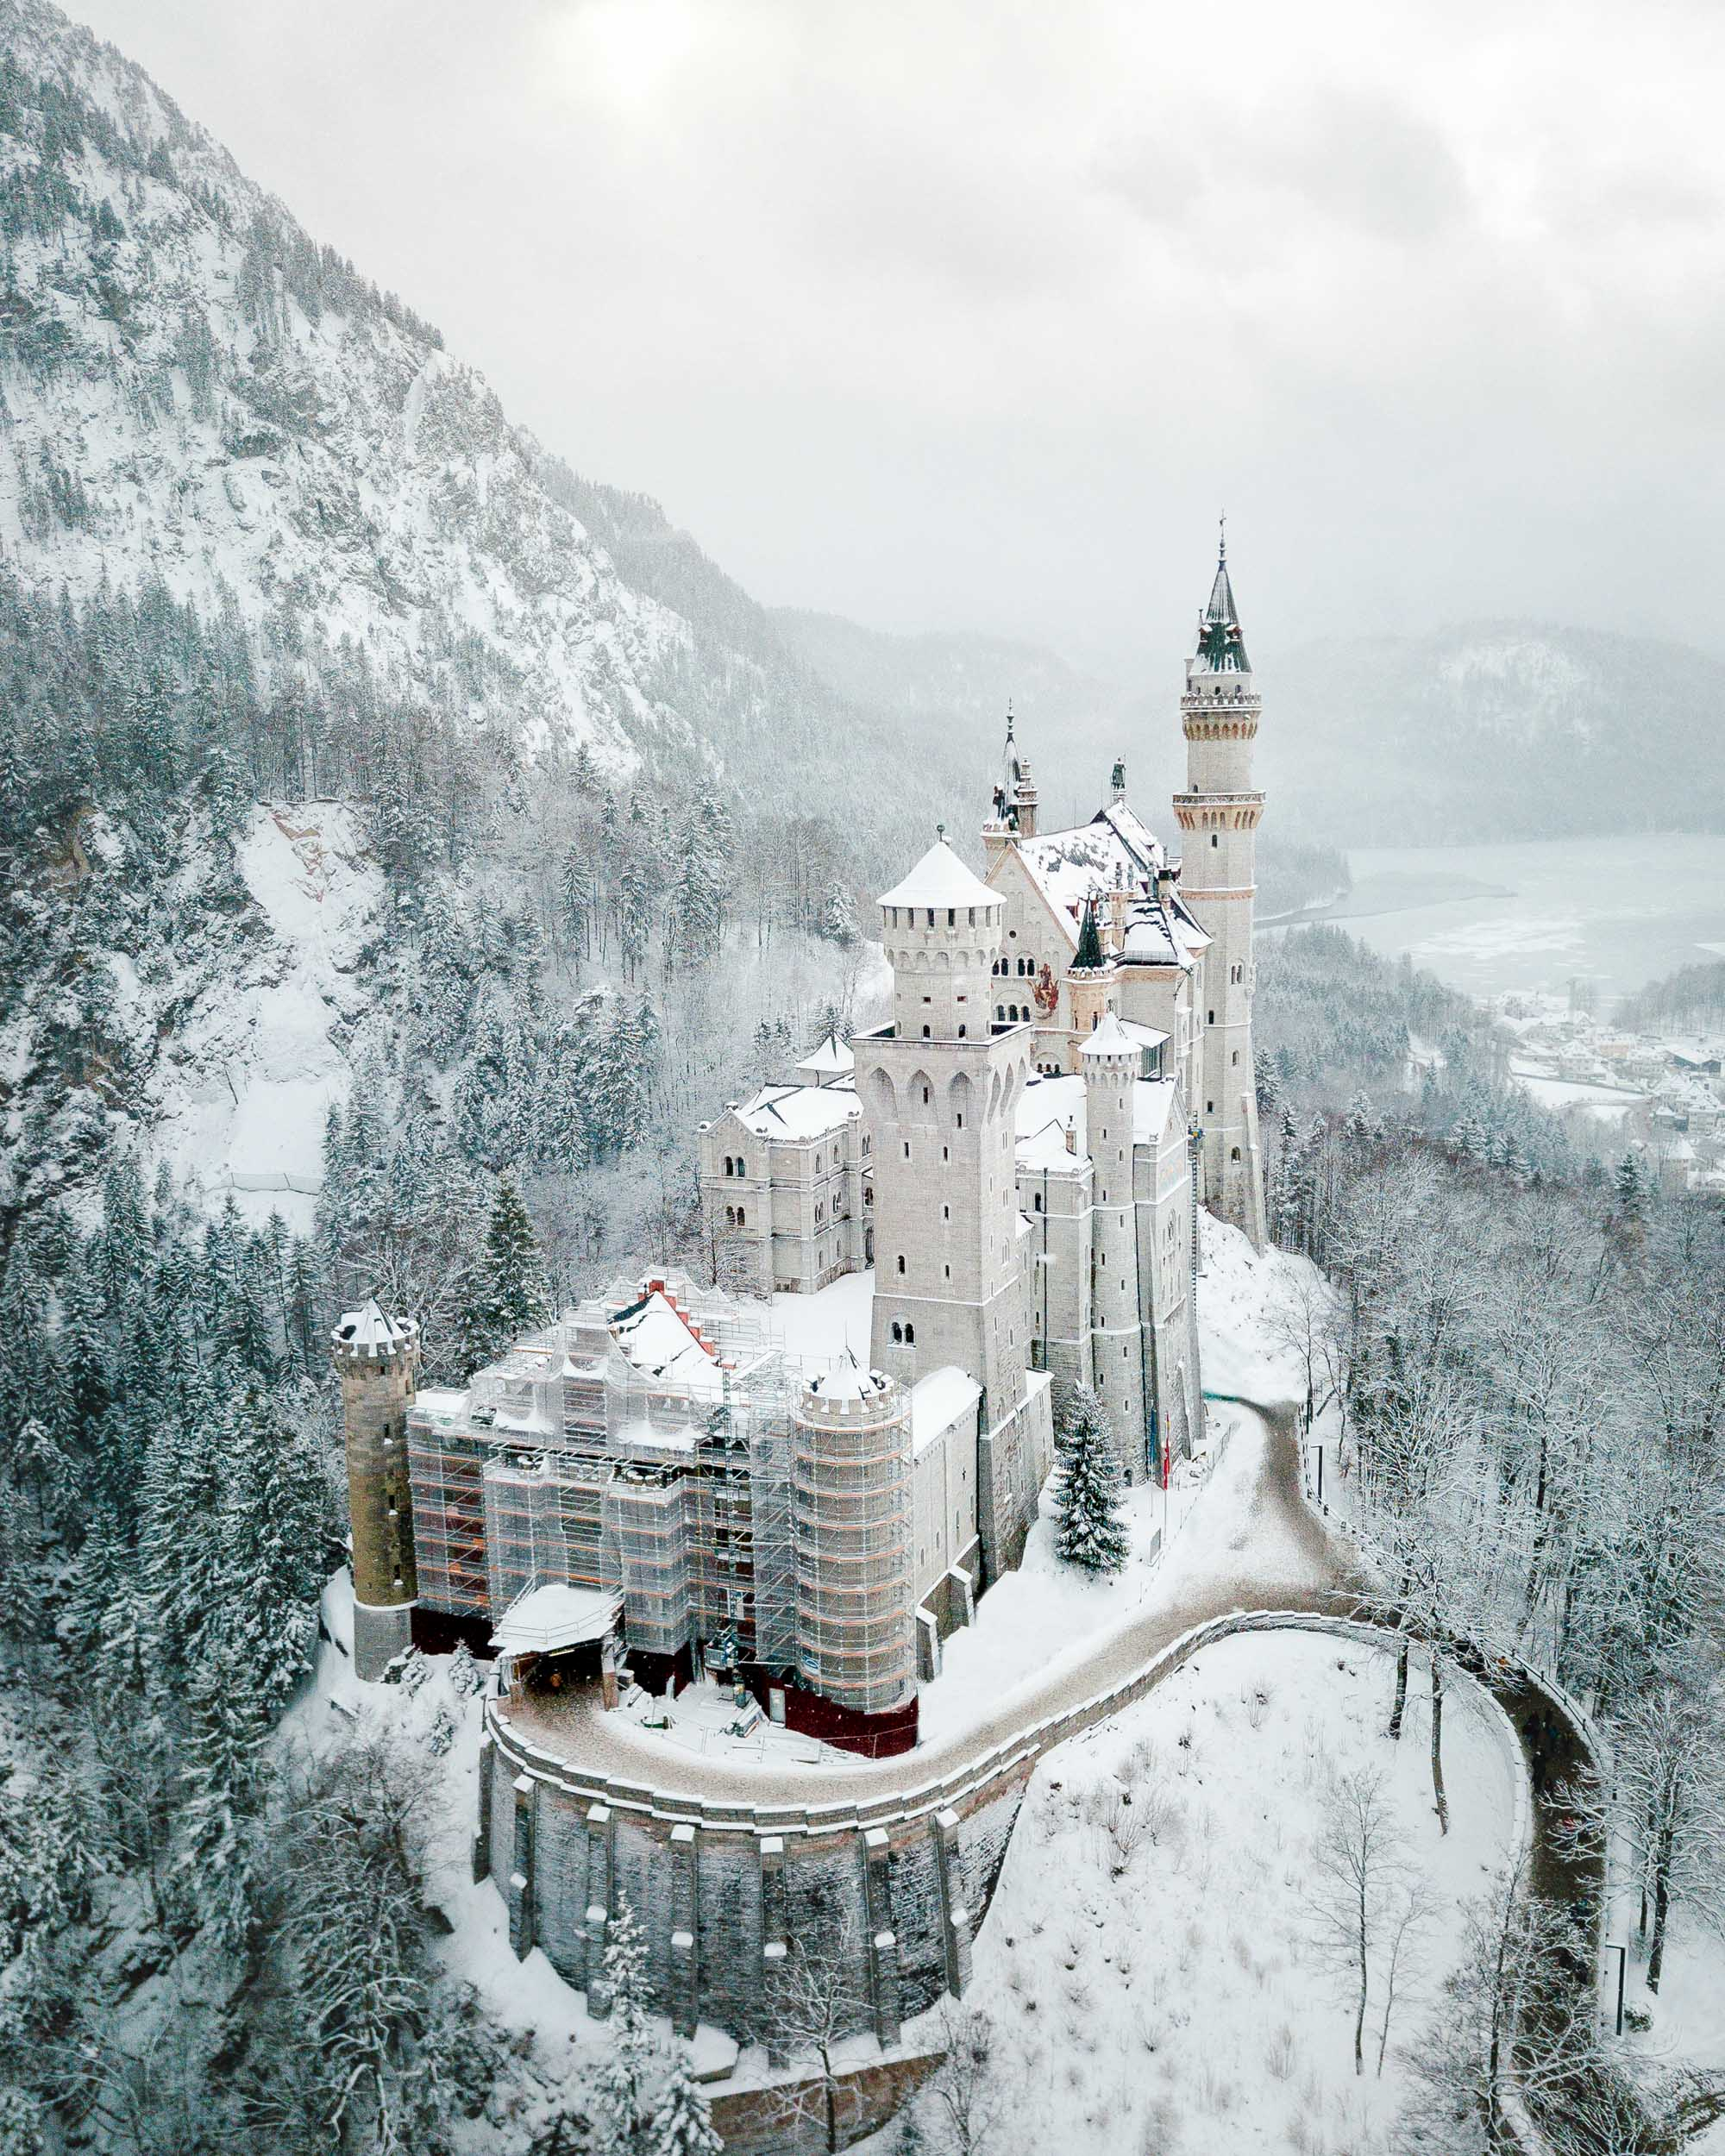 Neuschwanstein Castle in the snow in winter birds eye view Marienbrucke lookout best spot to photograph german fairytale castle